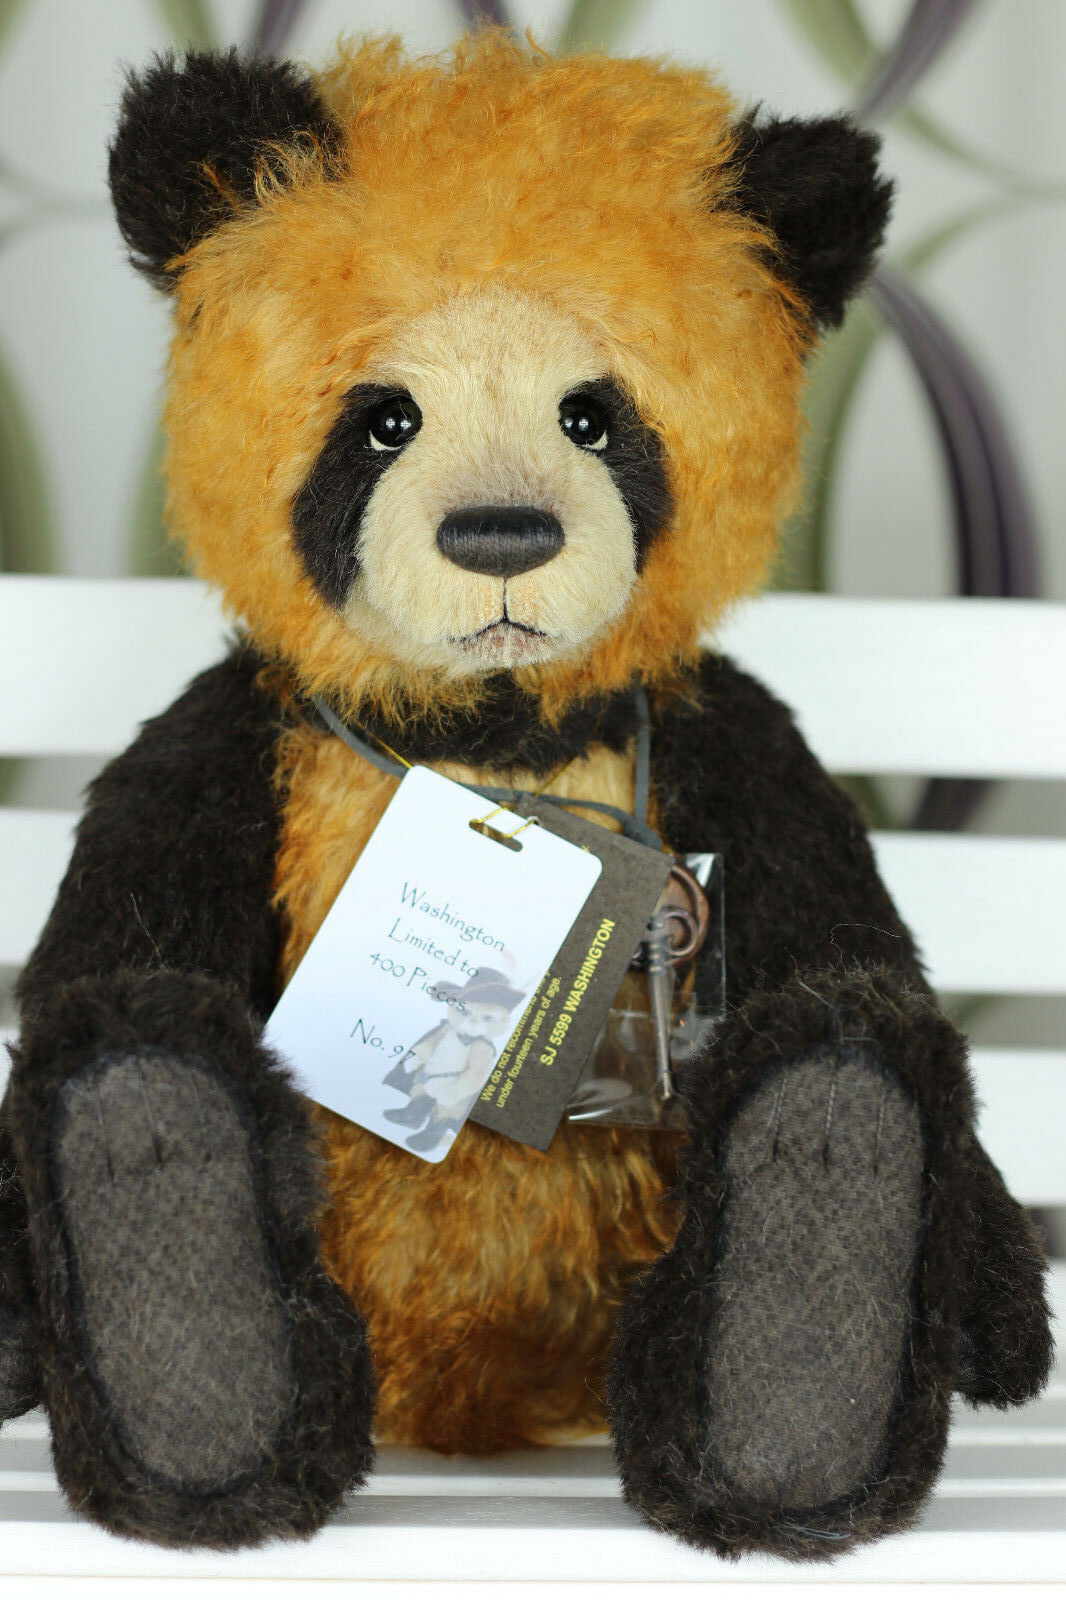 Bnwt Limited To 400 Charlie Bears Washington Mohair Isabelle Collection